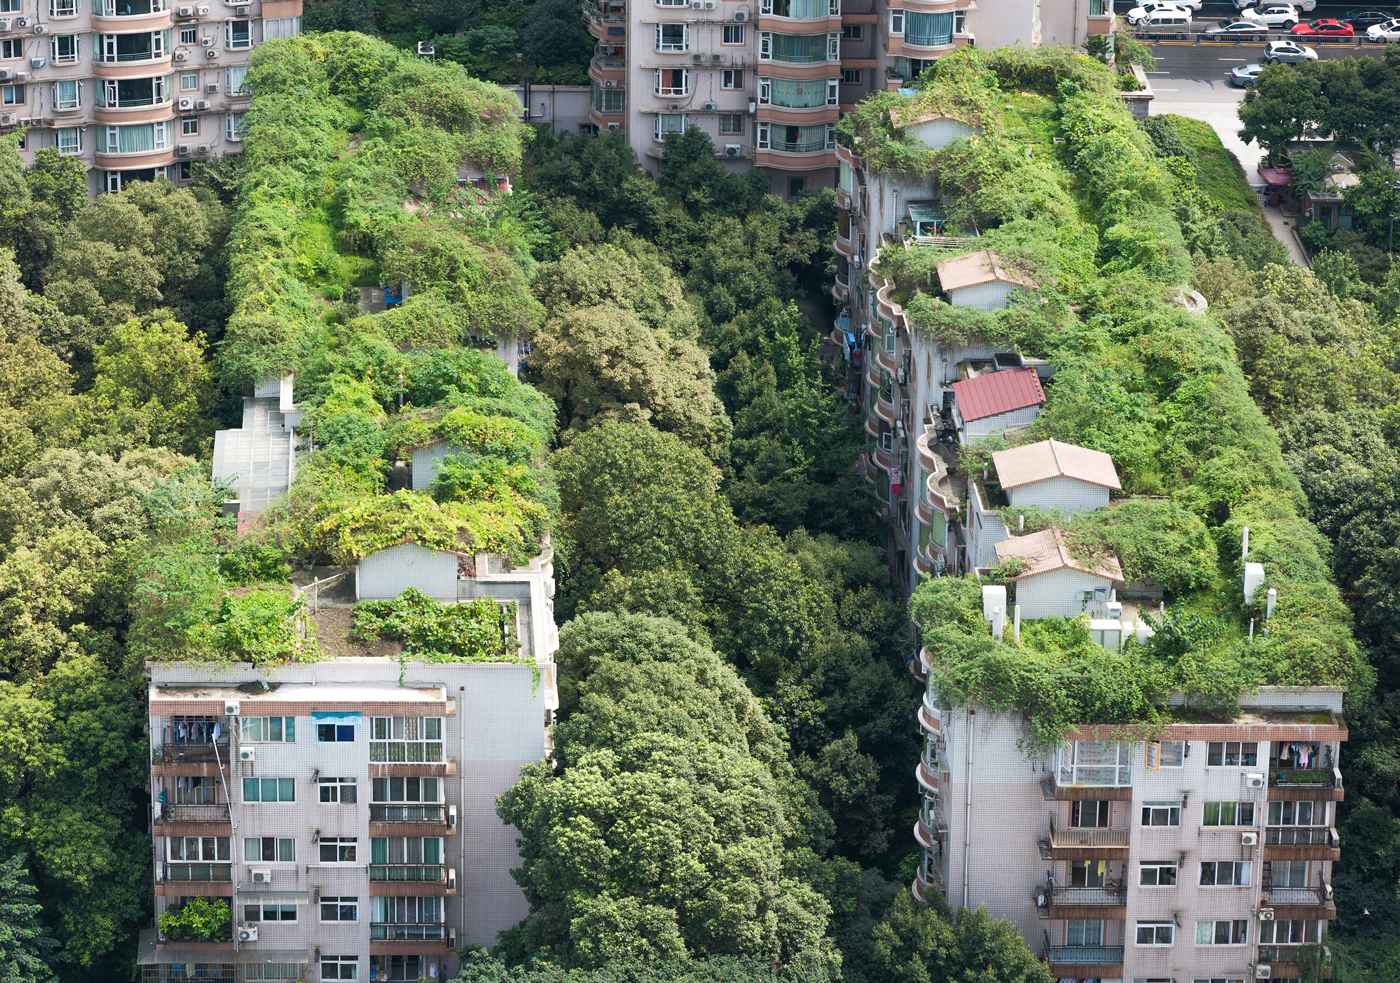 green-roofs-urban-resilience-post.jpg